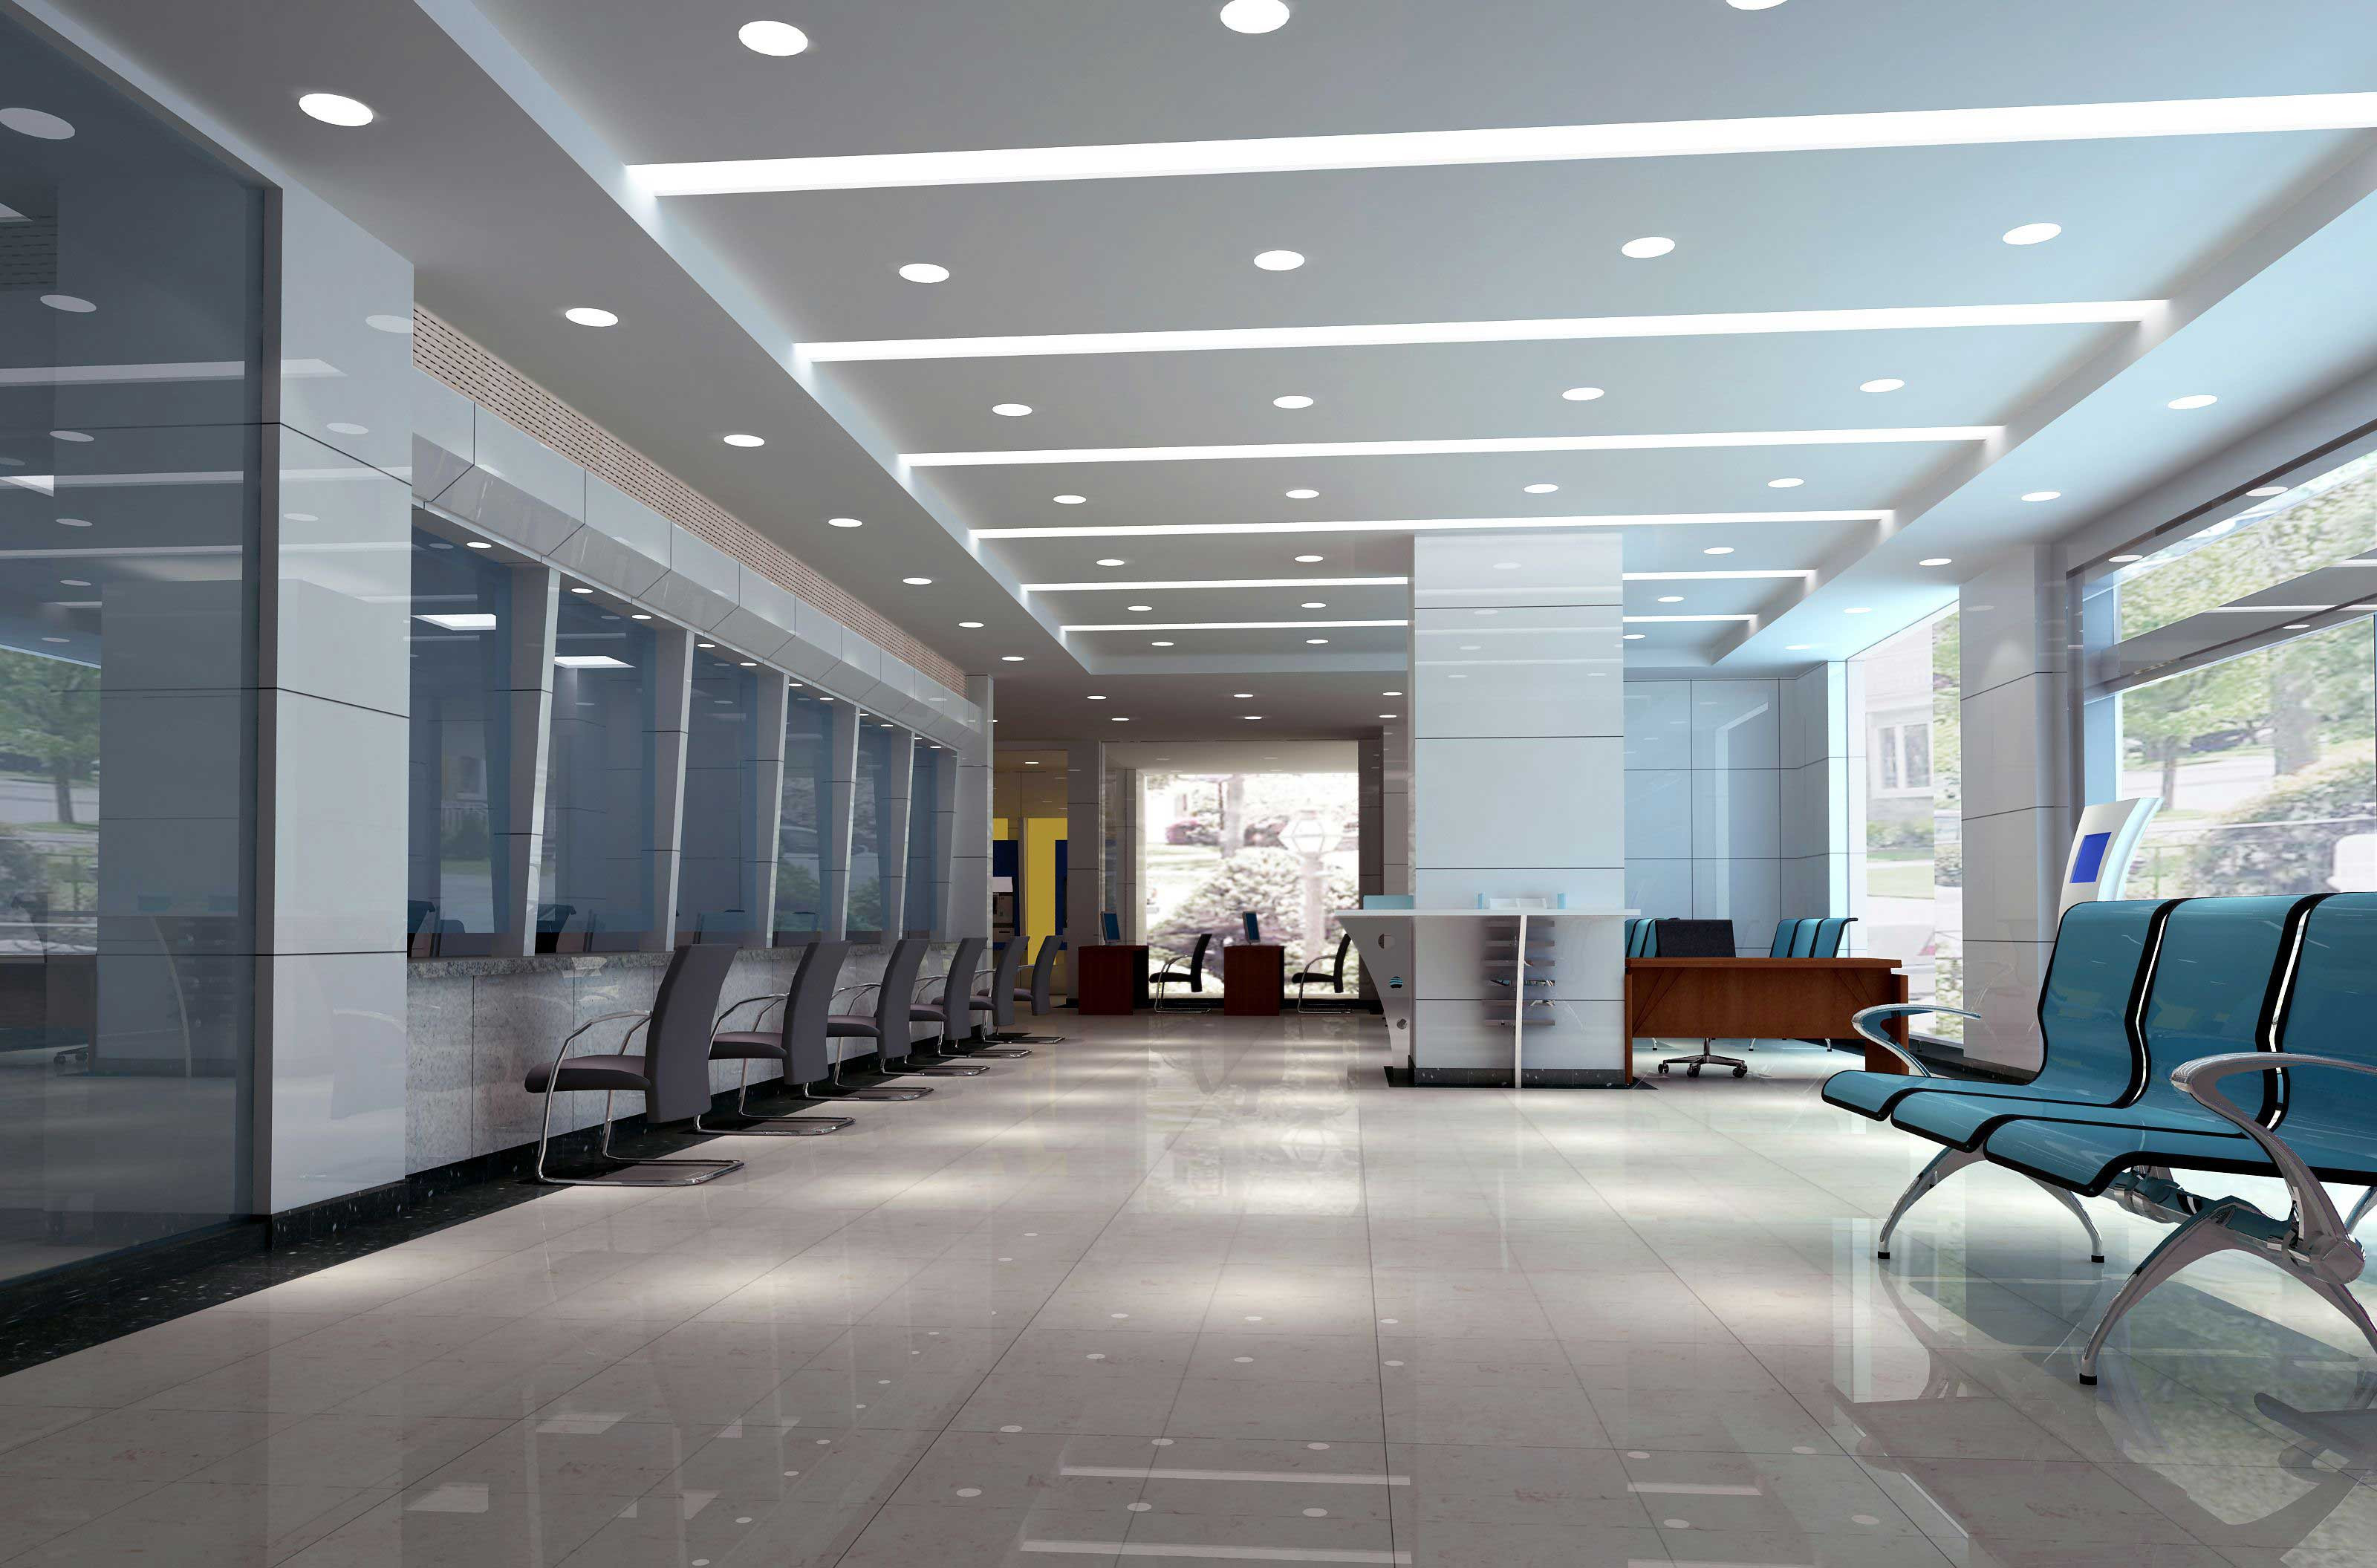 Best ideas about Commercial Led Lighting . Save or Pin Led Light Design Outstanding Led mercial Lighting Now.